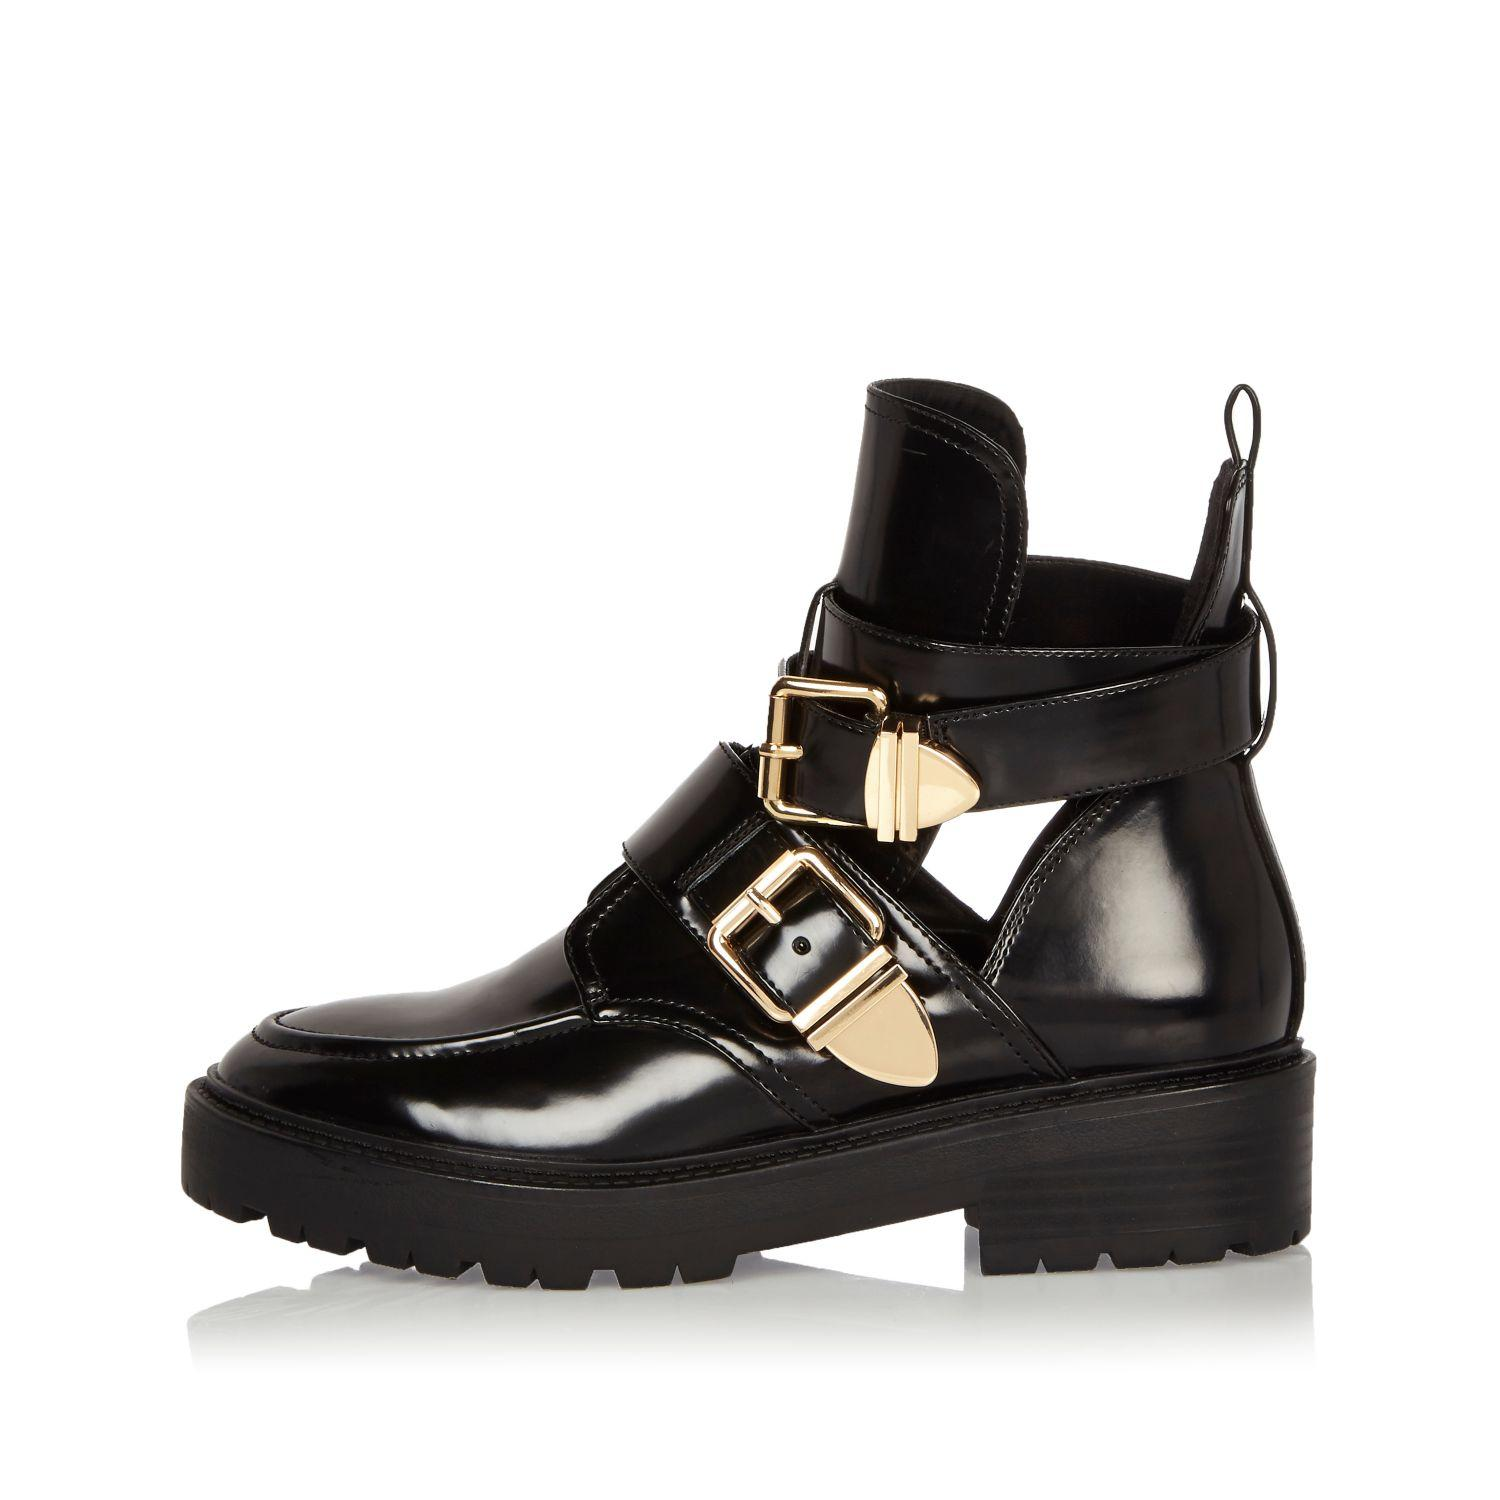 patent boots river island closeout